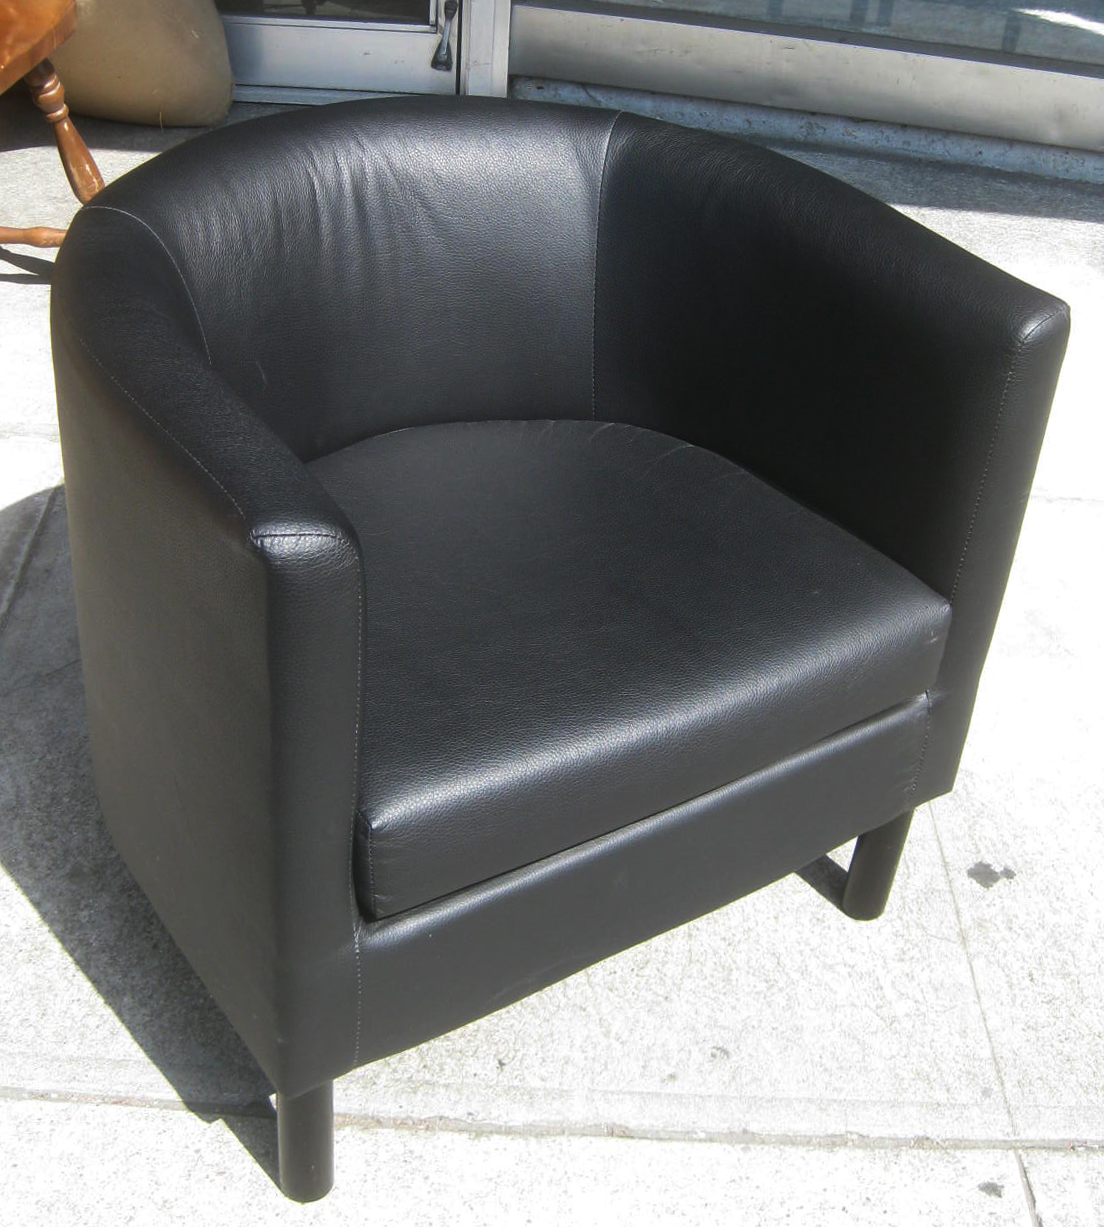 Ikea Ledersessel Uhuru Furniture And Collectibles Sold Ikea Leather Chair